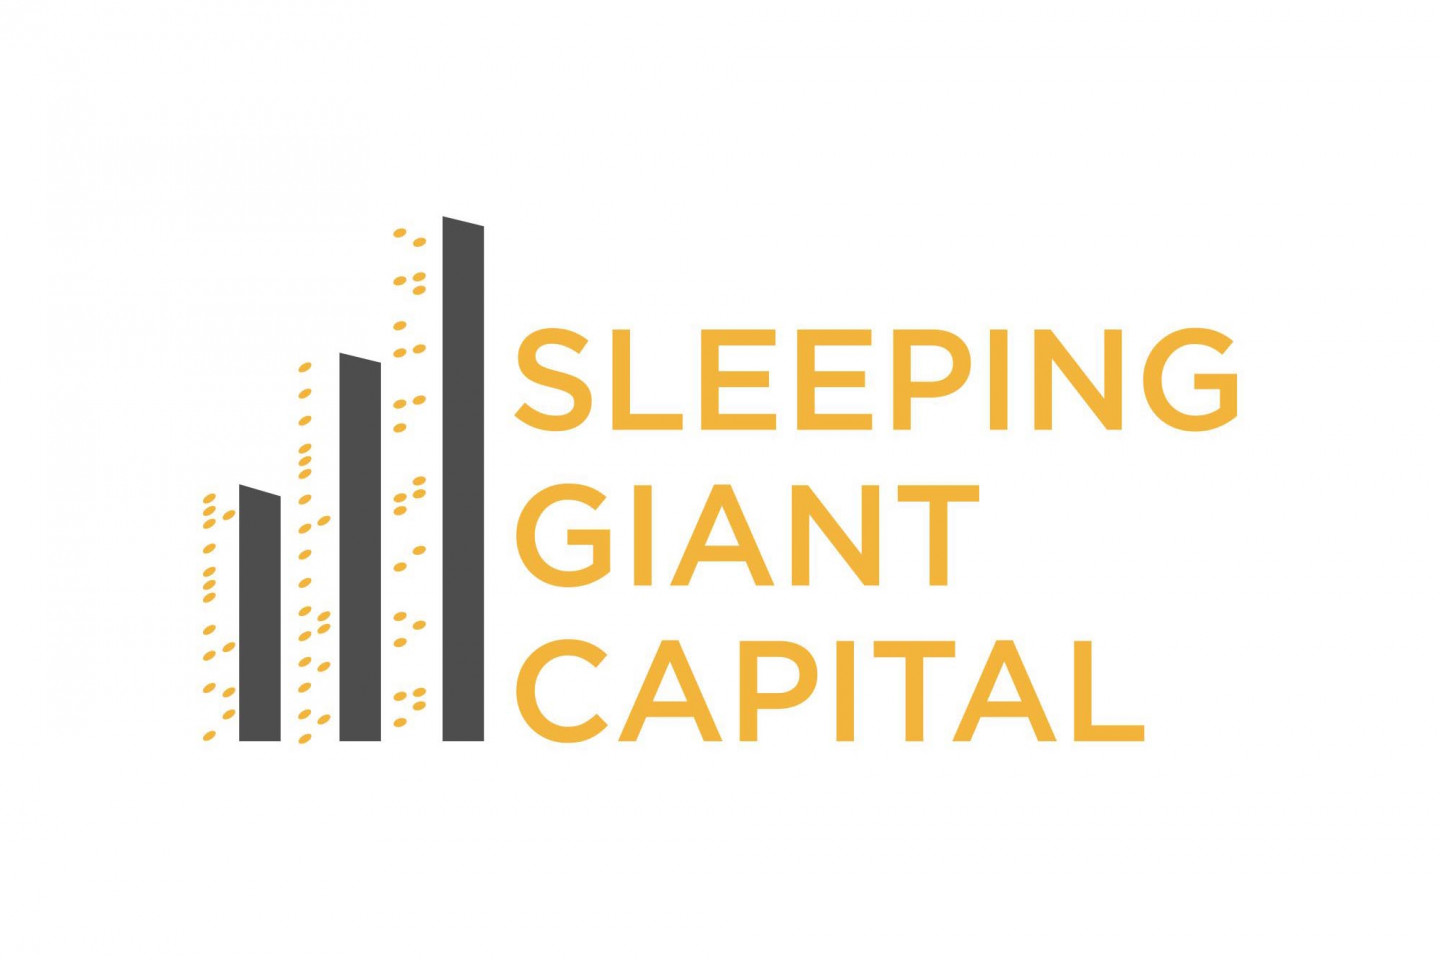 Sleeping Giant Capital